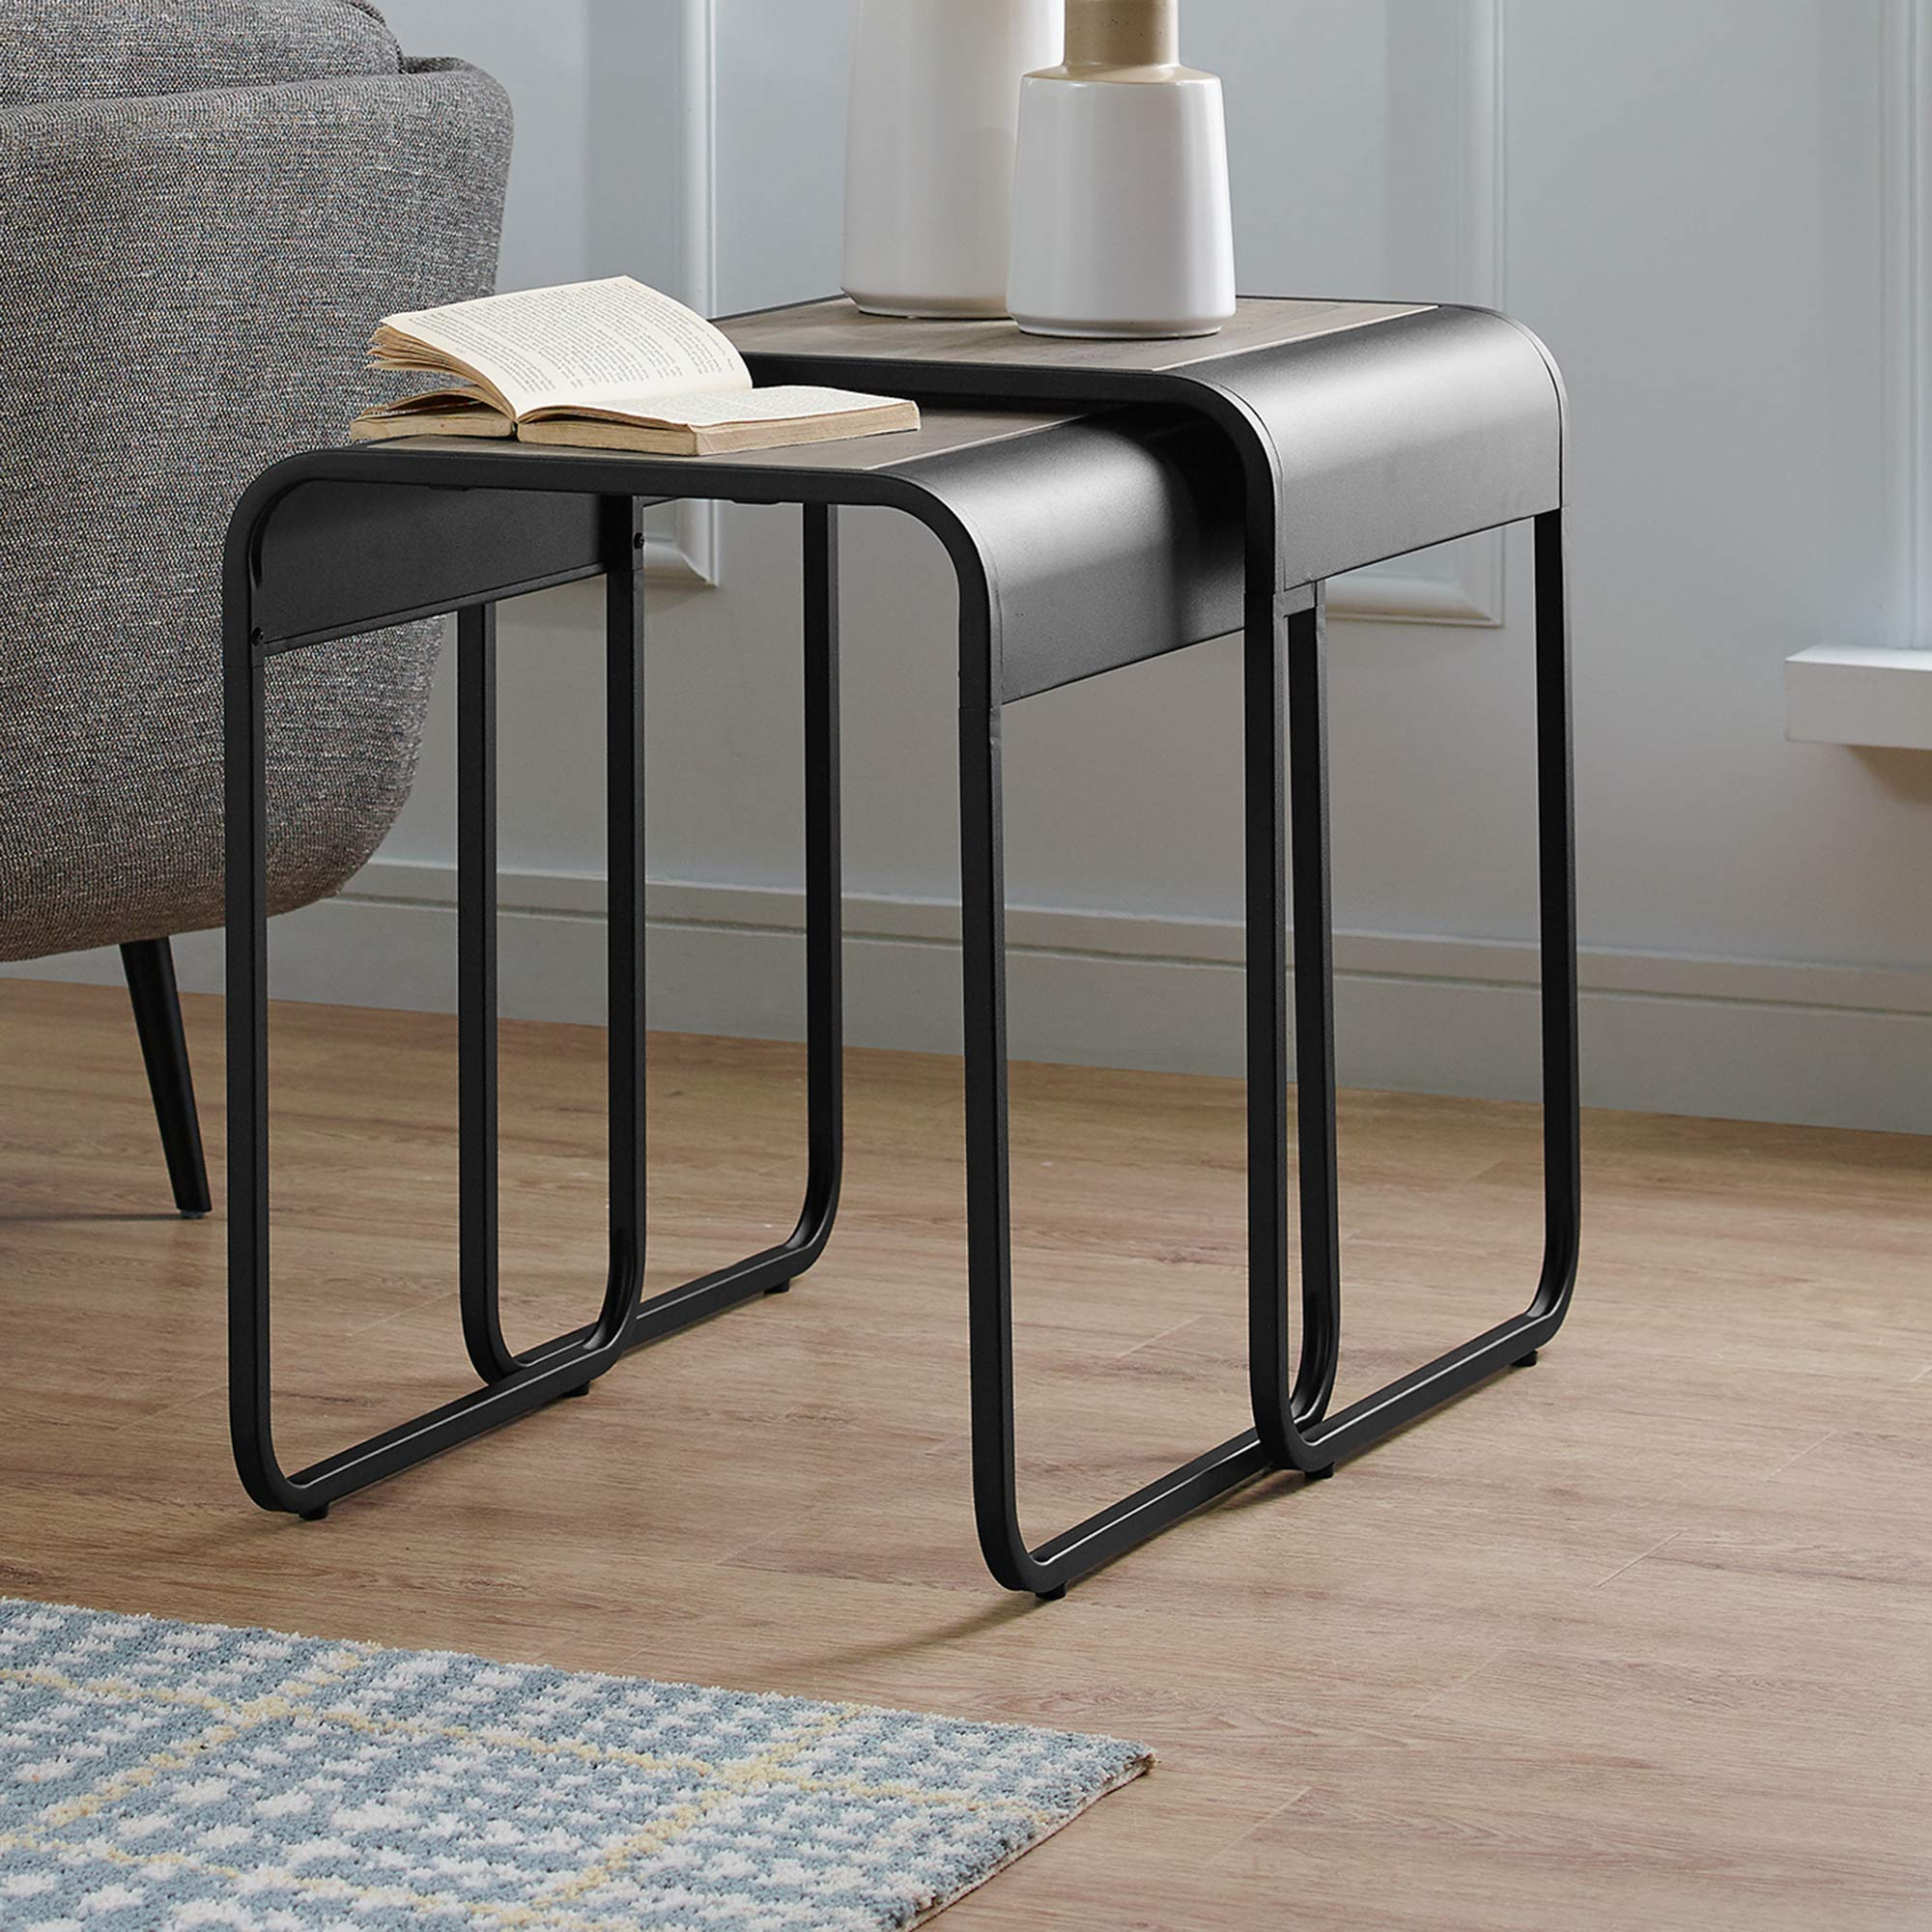 WE Furniture AZF18CURWSTGW Curved Wood and Metal Square Side Nesting Tables, Set of 2, Grey Wash/Black by WE Furniture